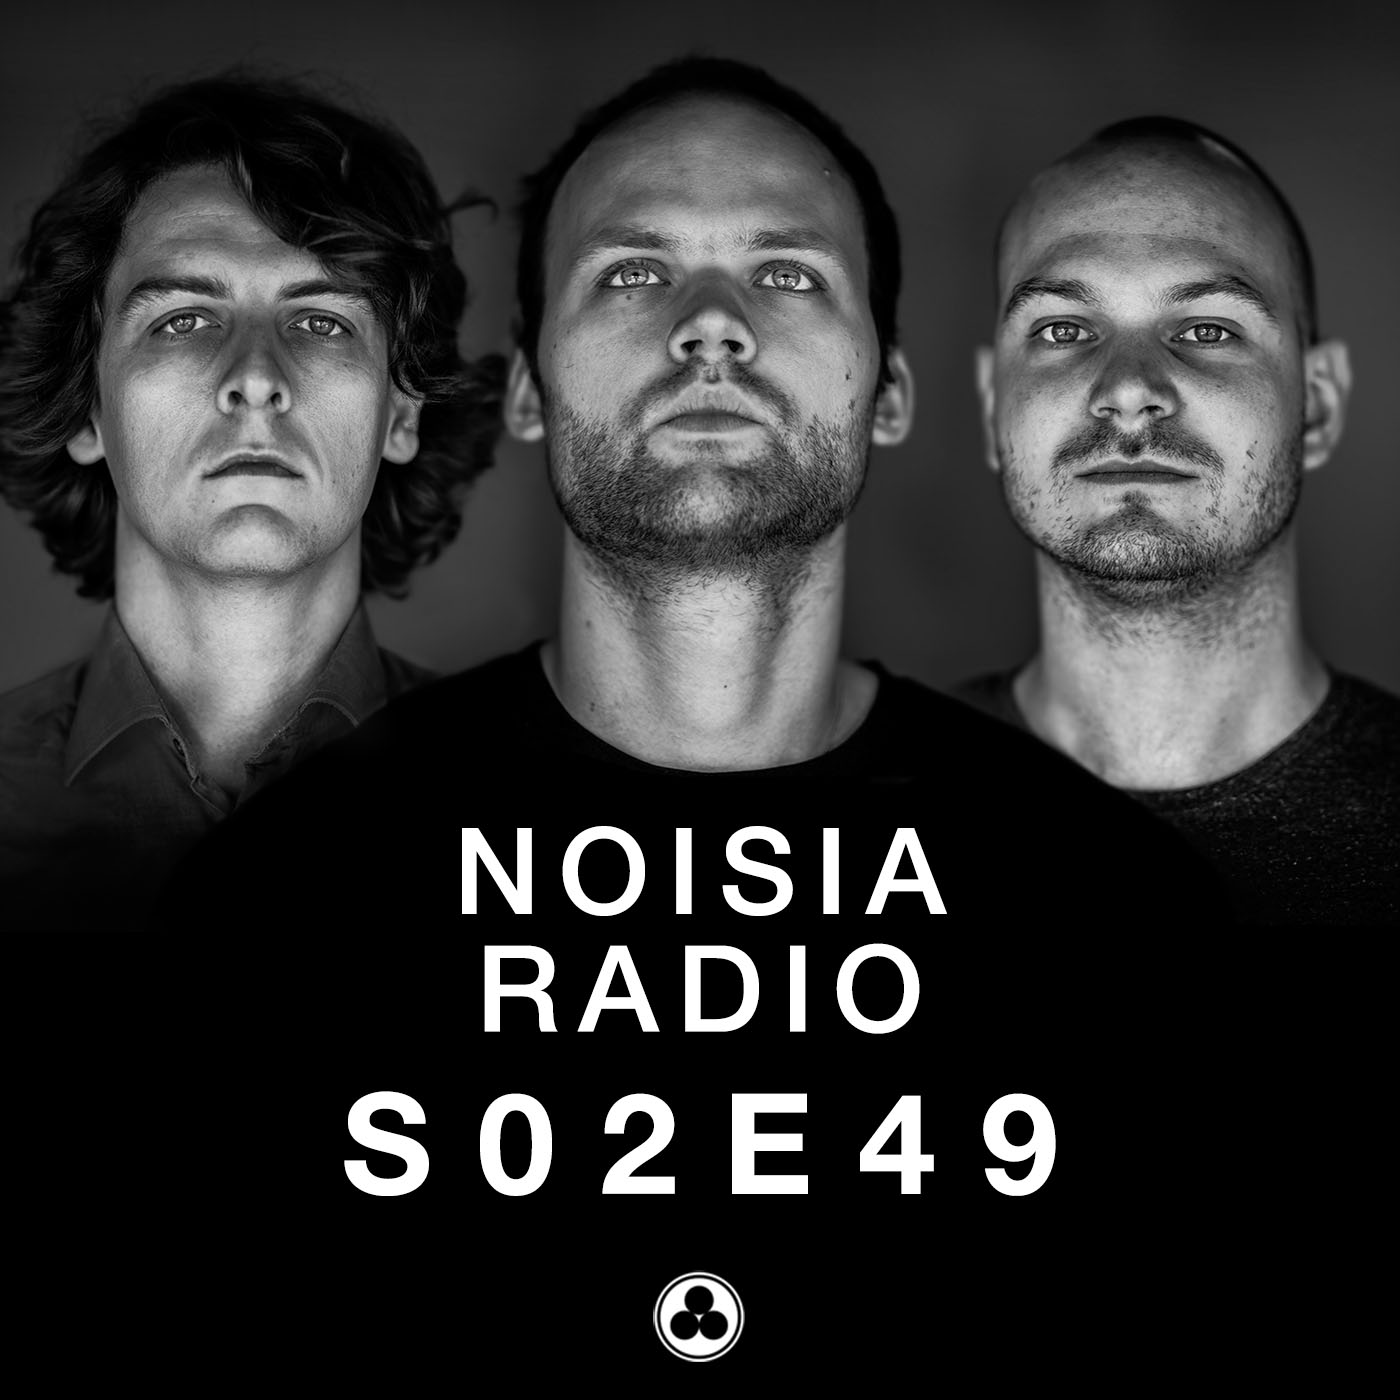 Noisia Radio S02E49